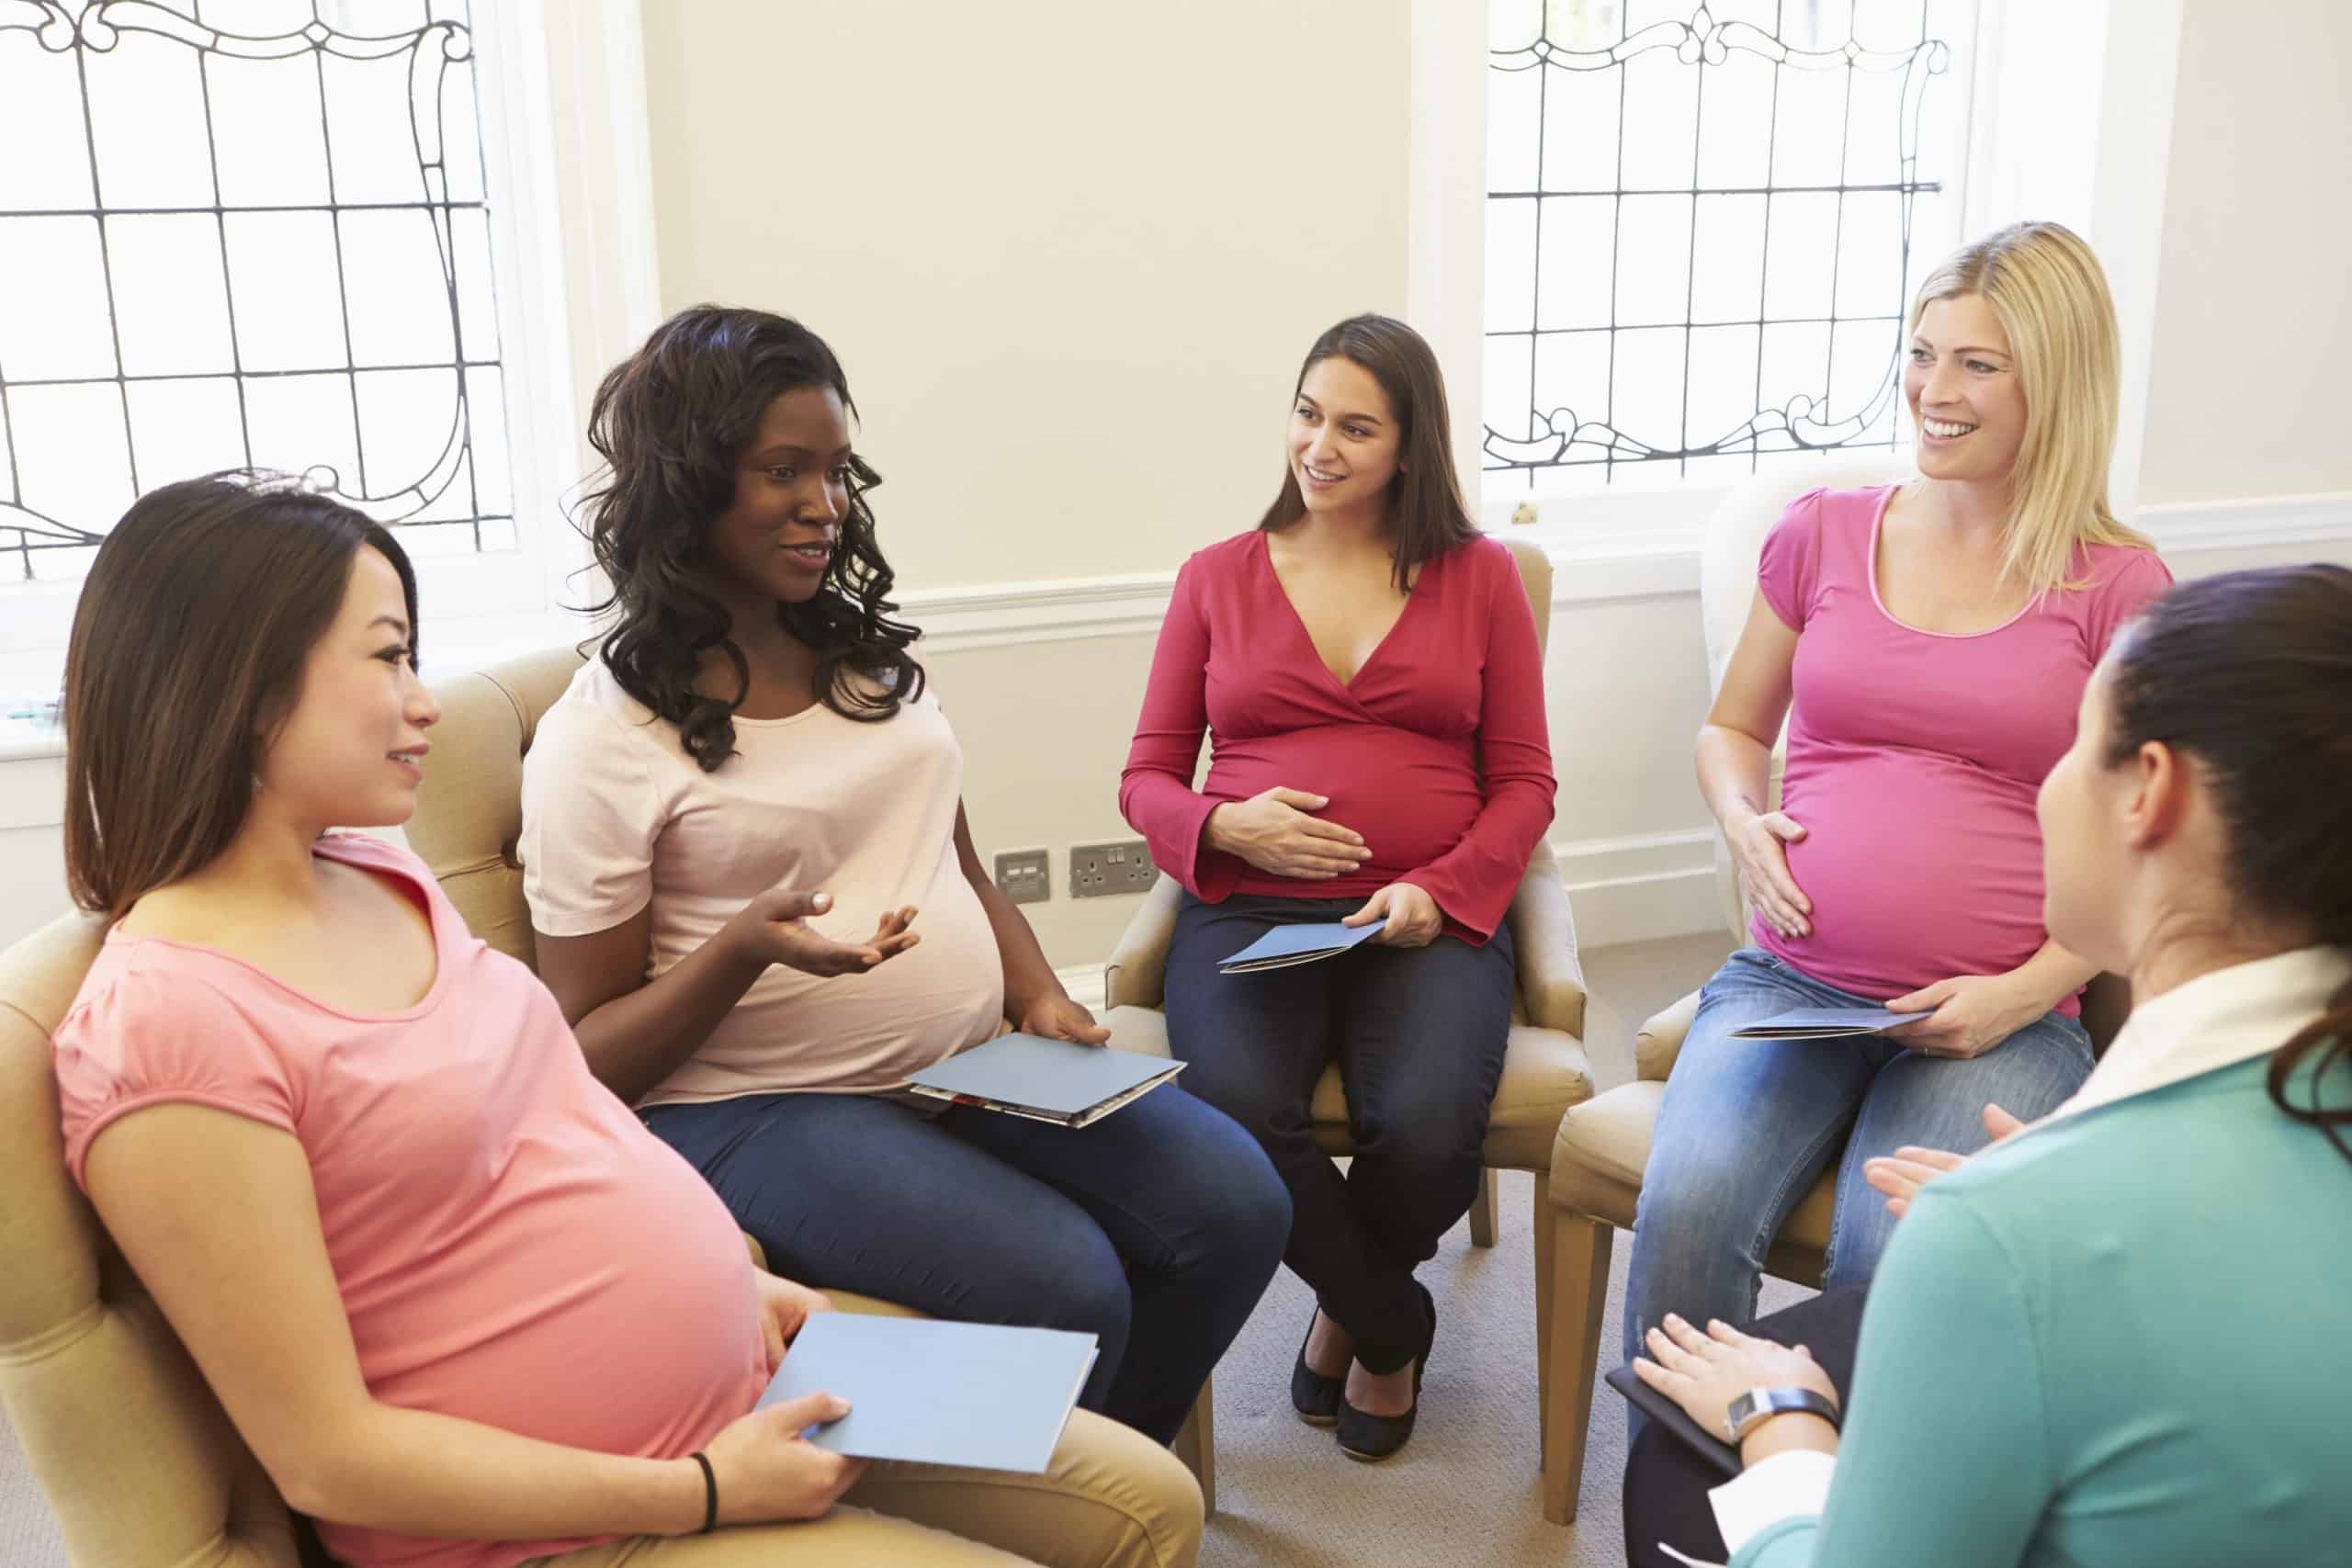 Five pregnant women sitting on chairs